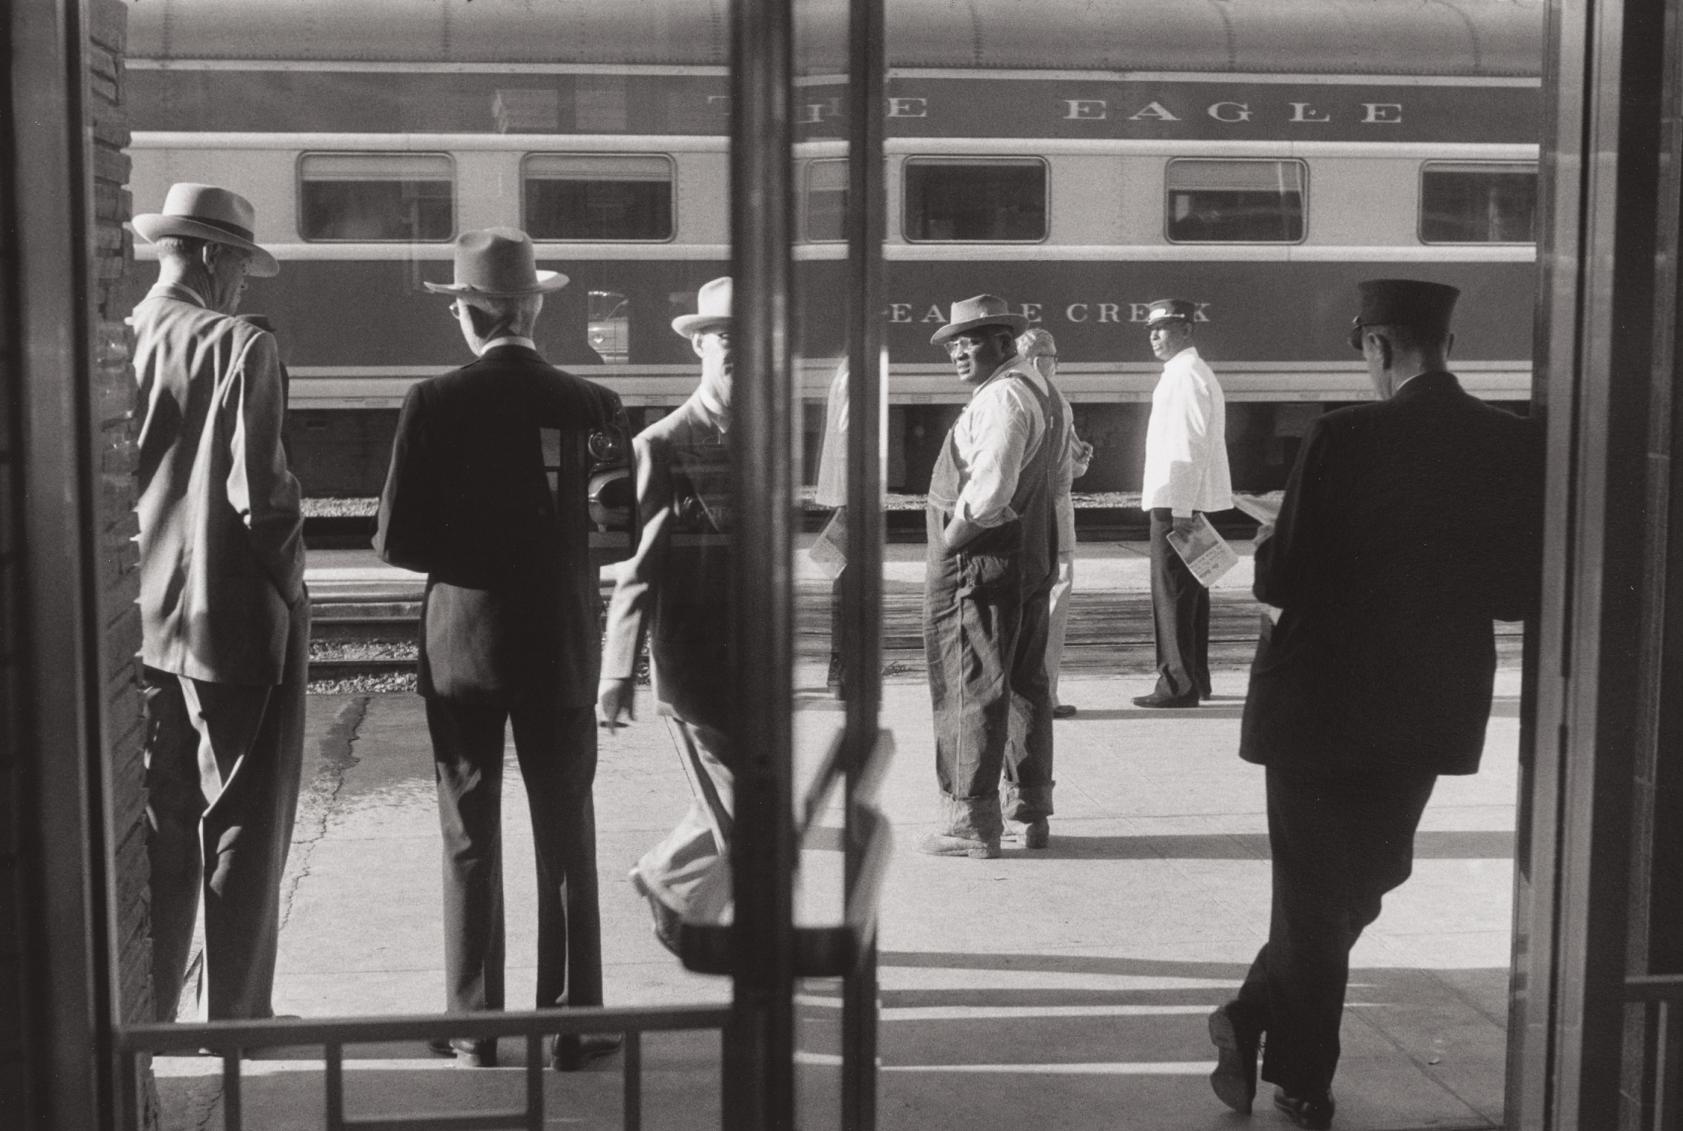 Henri Cartier-Bresson-Railway Station, St. Louis, Missouri-1957